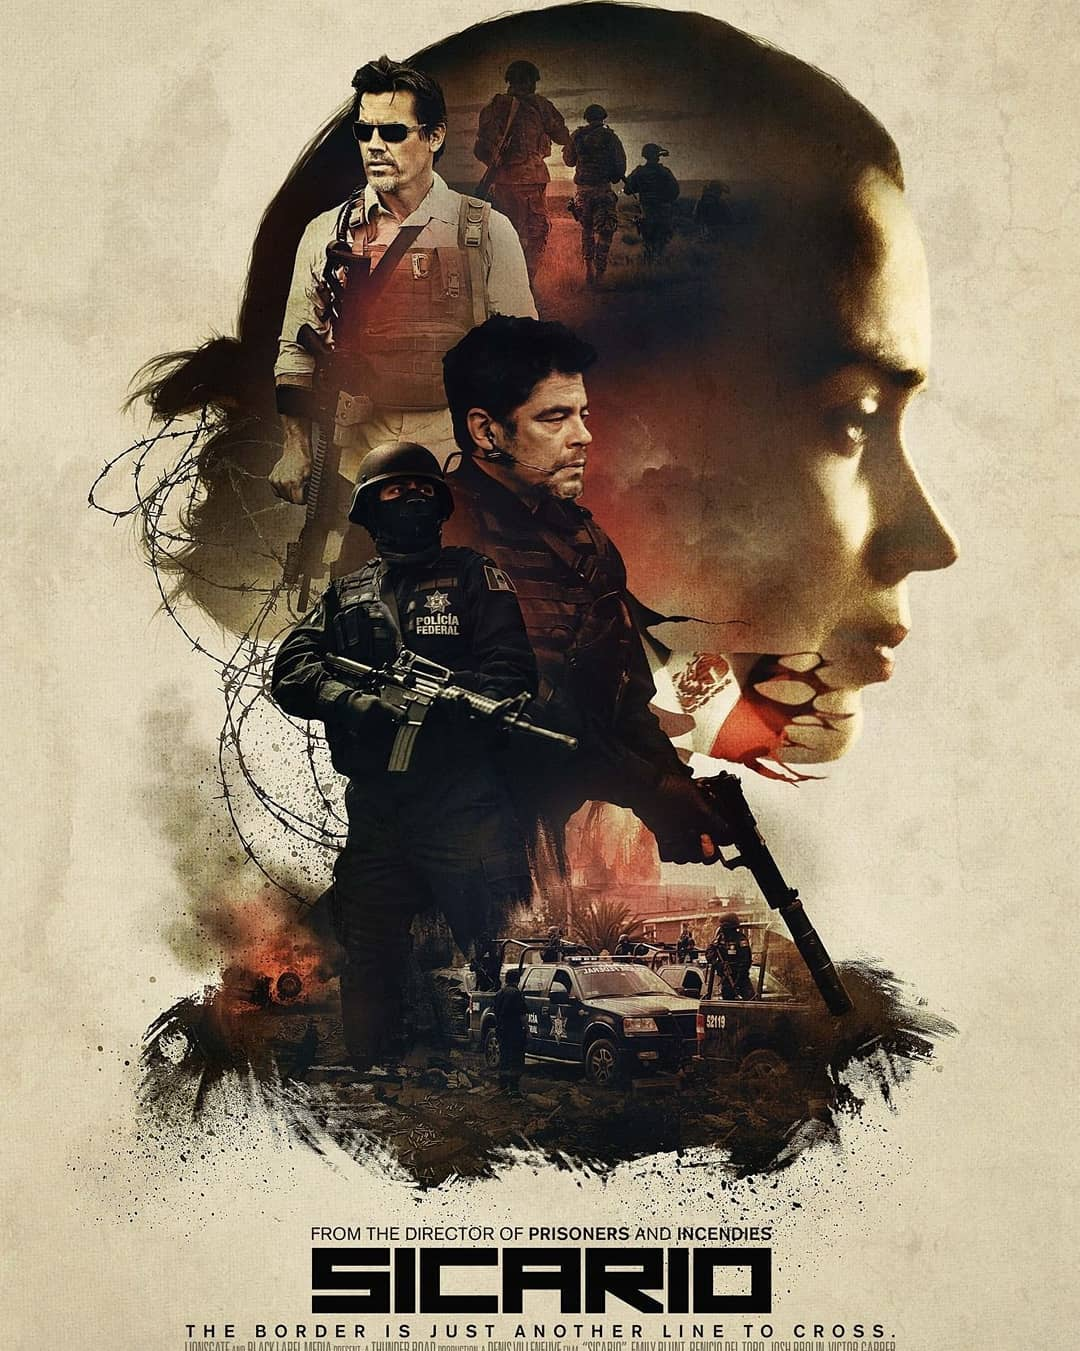 Tonights movie selection. Sicario.  I grew up in a border town, an active one. W